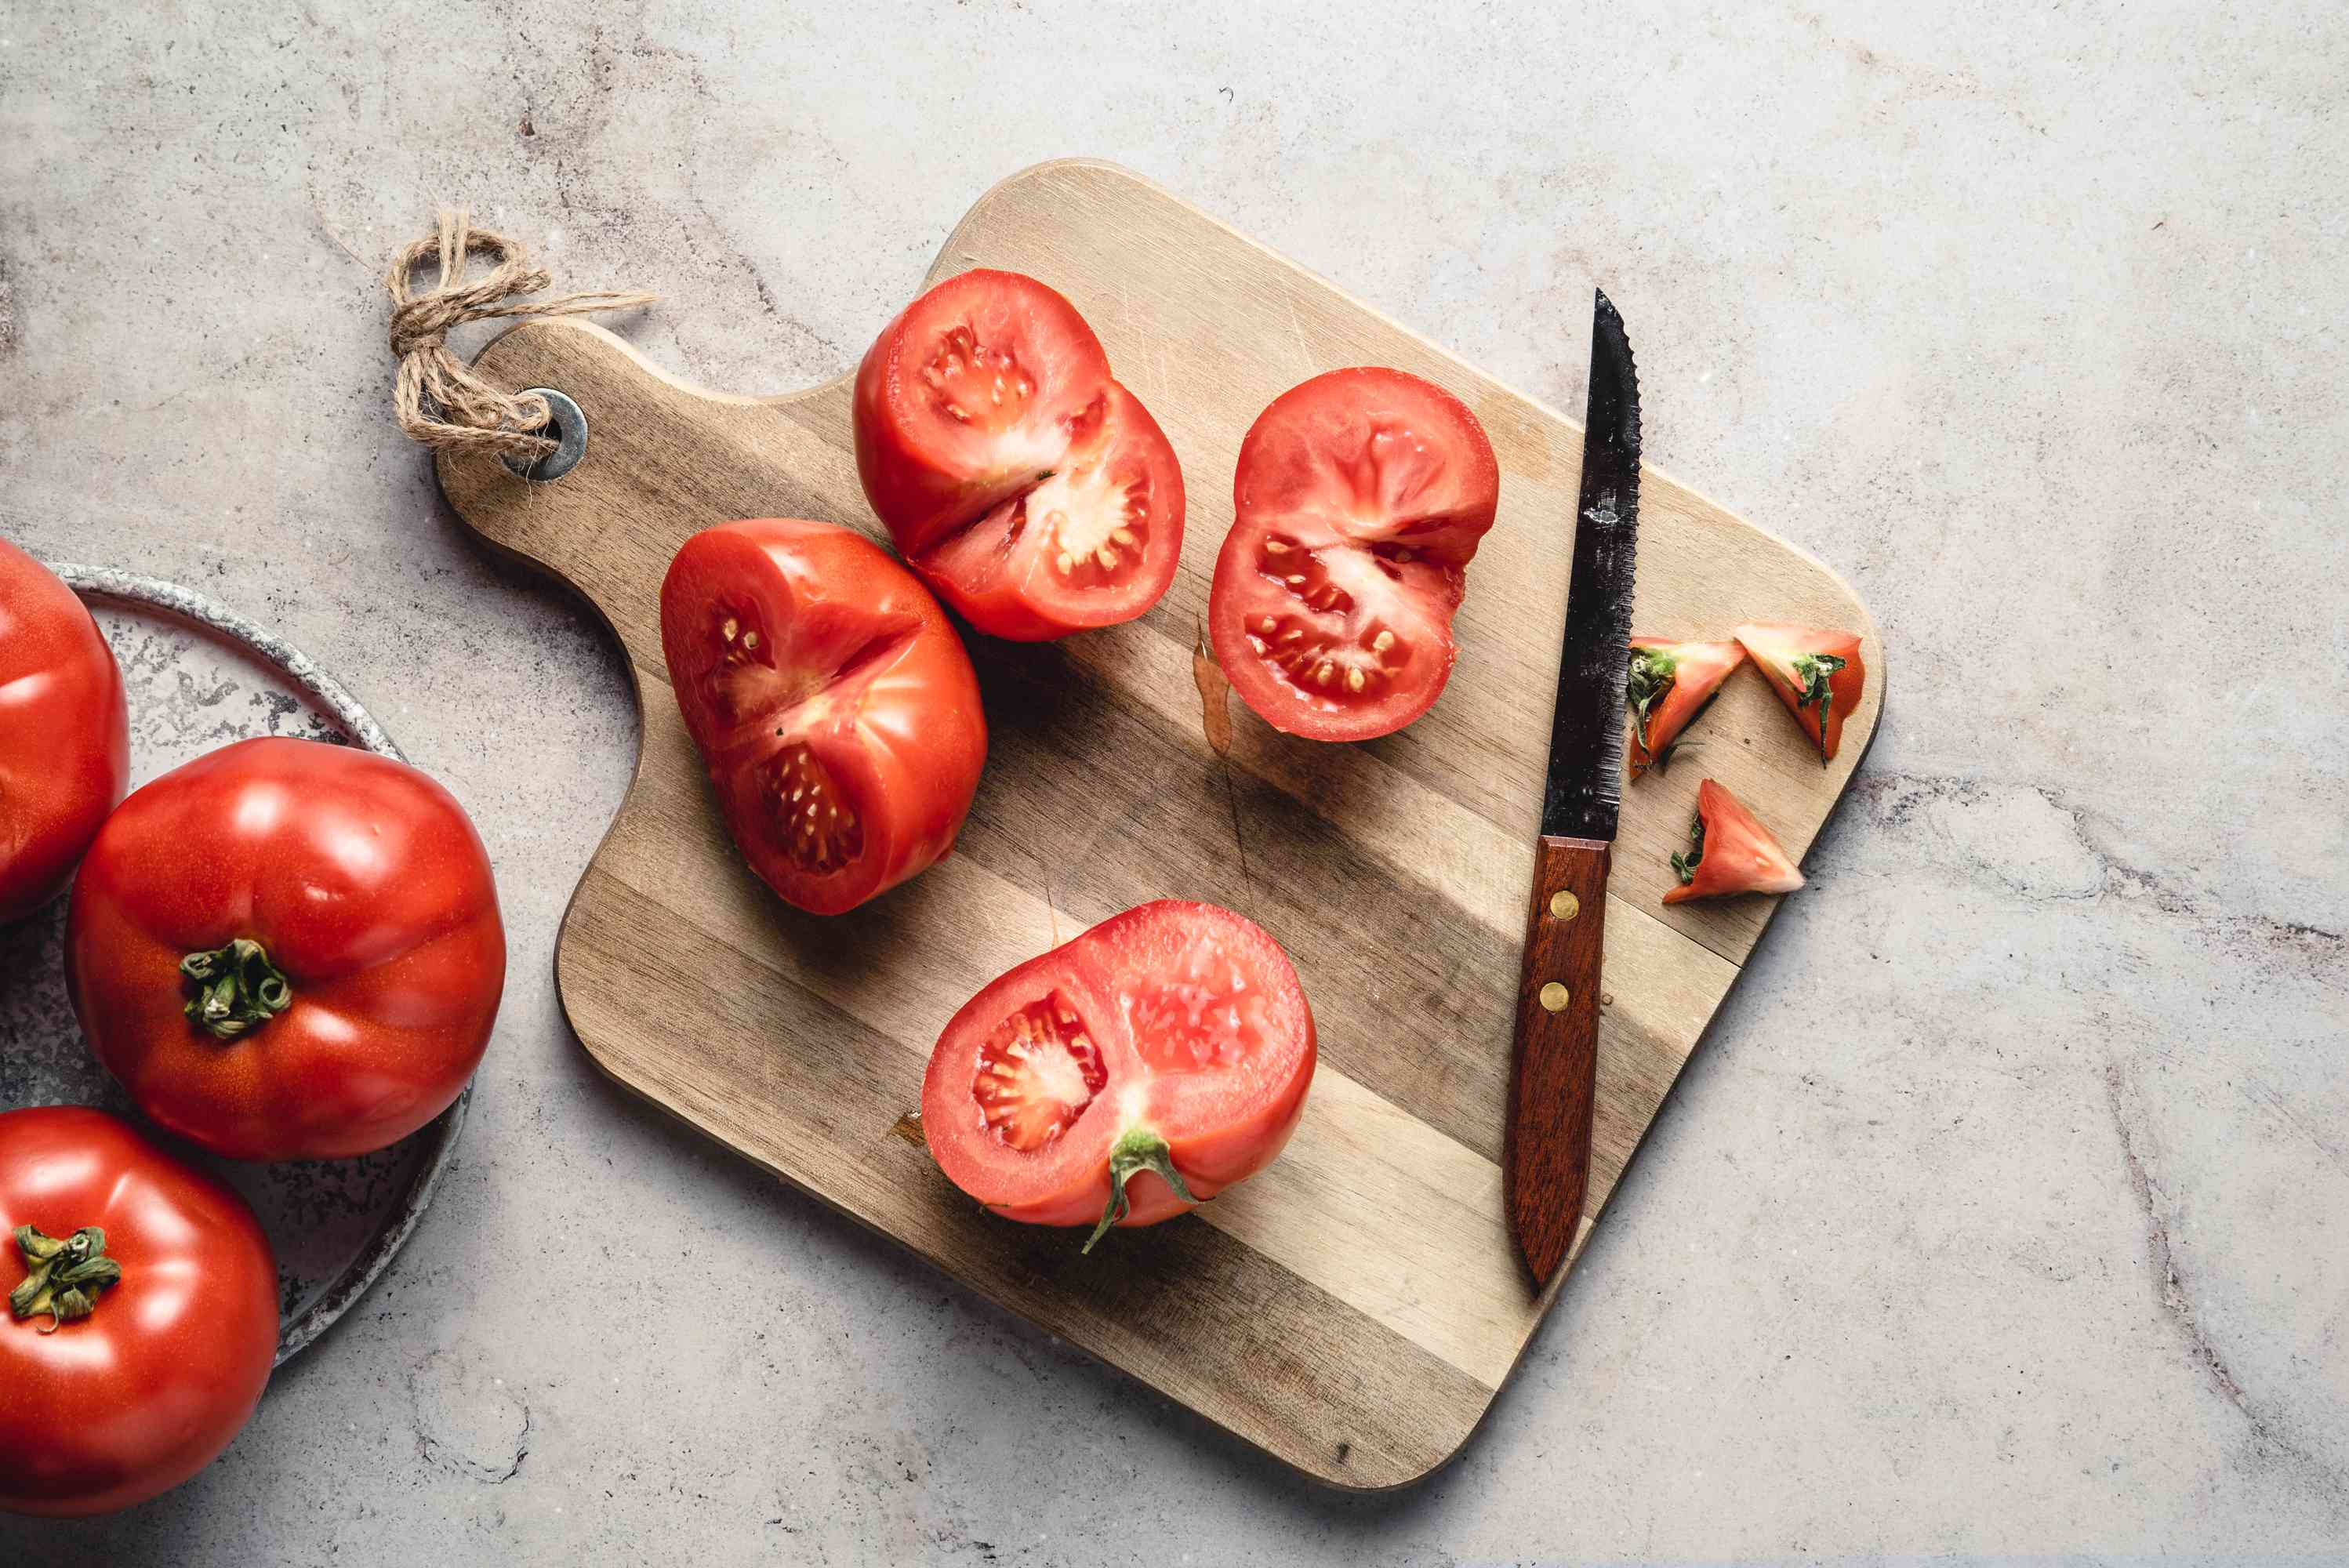 Remove the stems of the tomatoes and cut the tomatoes in half